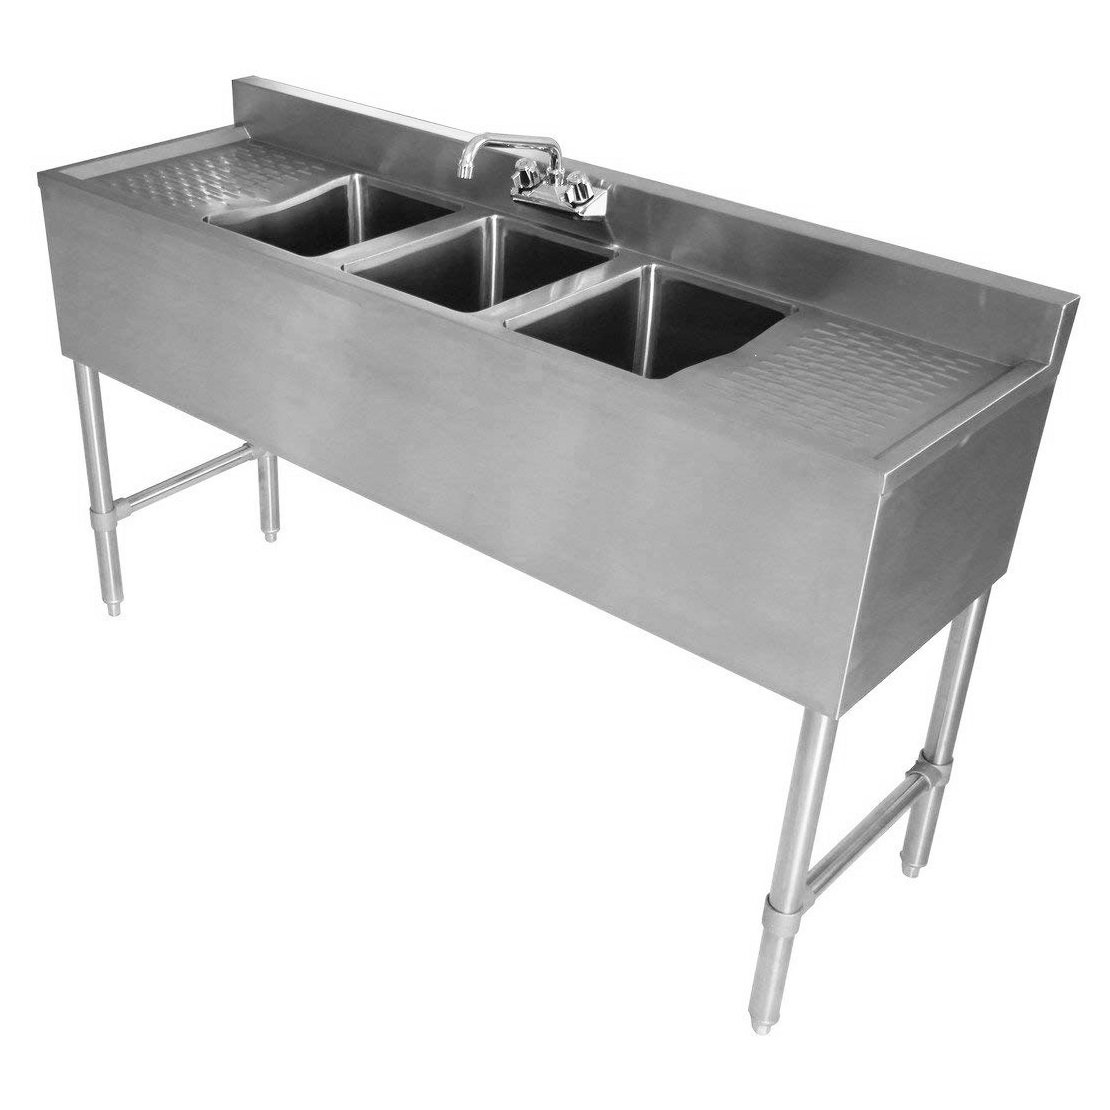 Durasteel 3 Compartment Stainless Steel Bar Sink Nsf 10 X 14 Bowl Drain Diagram For Pinterest Size Commercial Standard Underbar Double Drainboard Approved